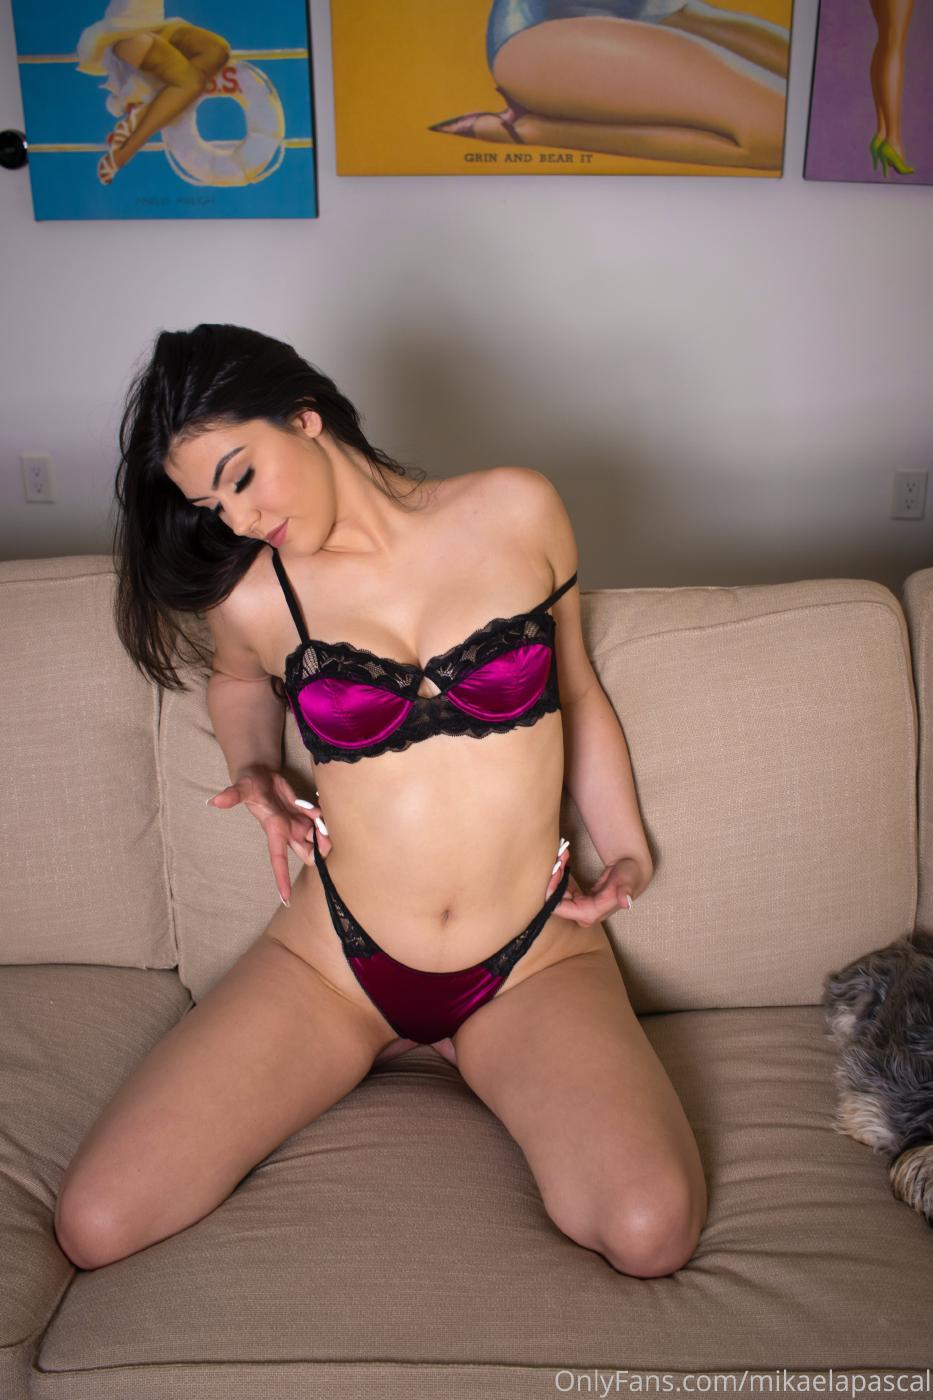 Mikaela Pascal Onlyfans April Extras Leaked 0016